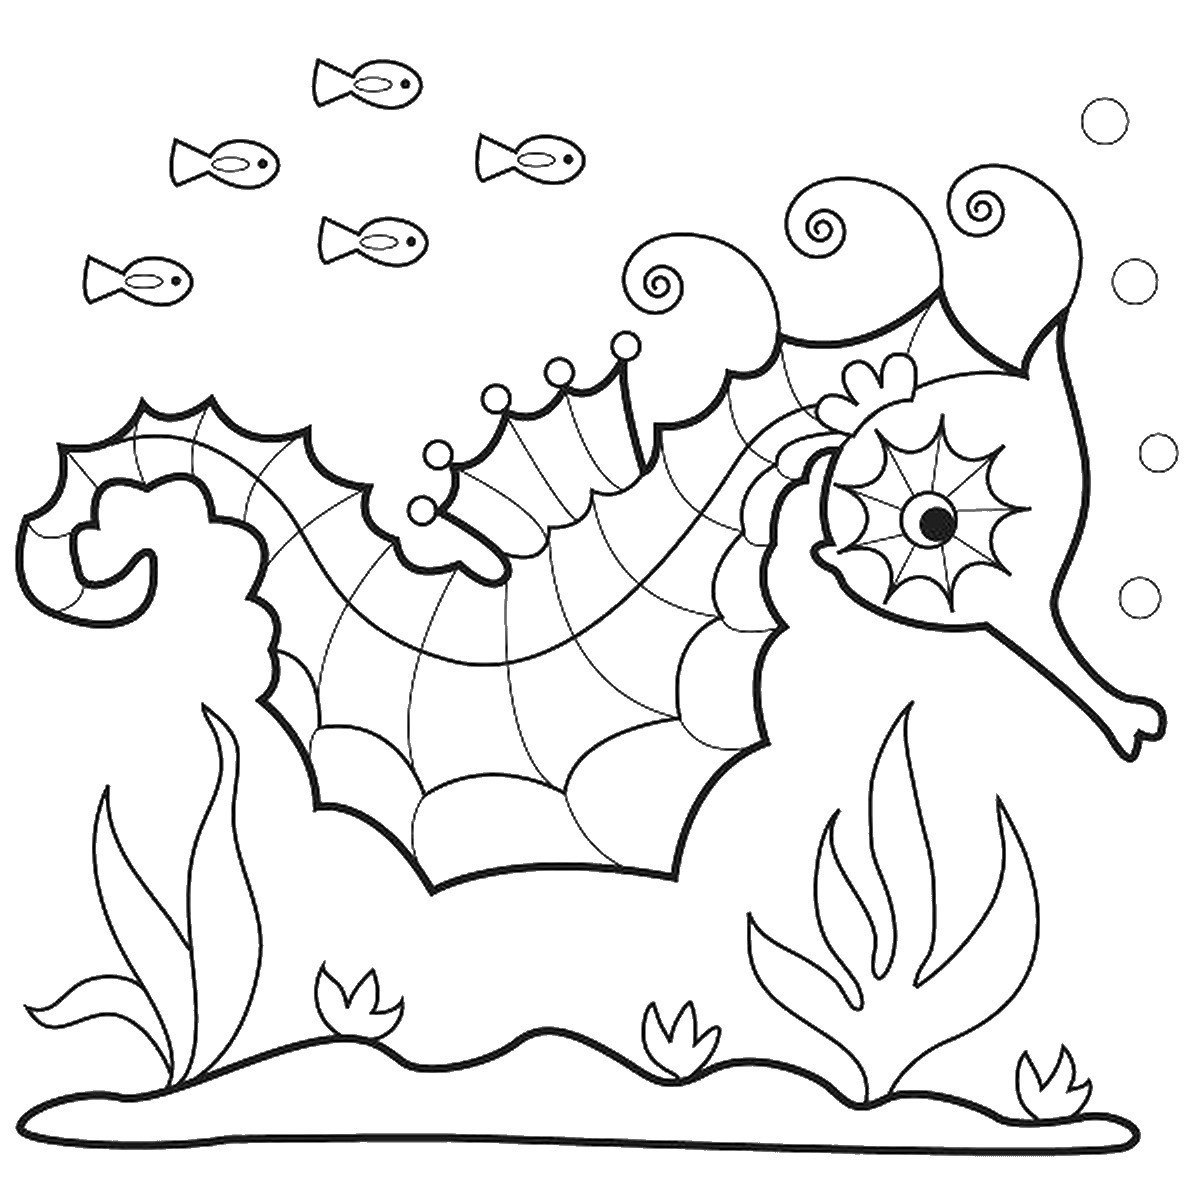 1200x1200 Free Printable Seahorse Coloring Pages For Kids Best Acpra